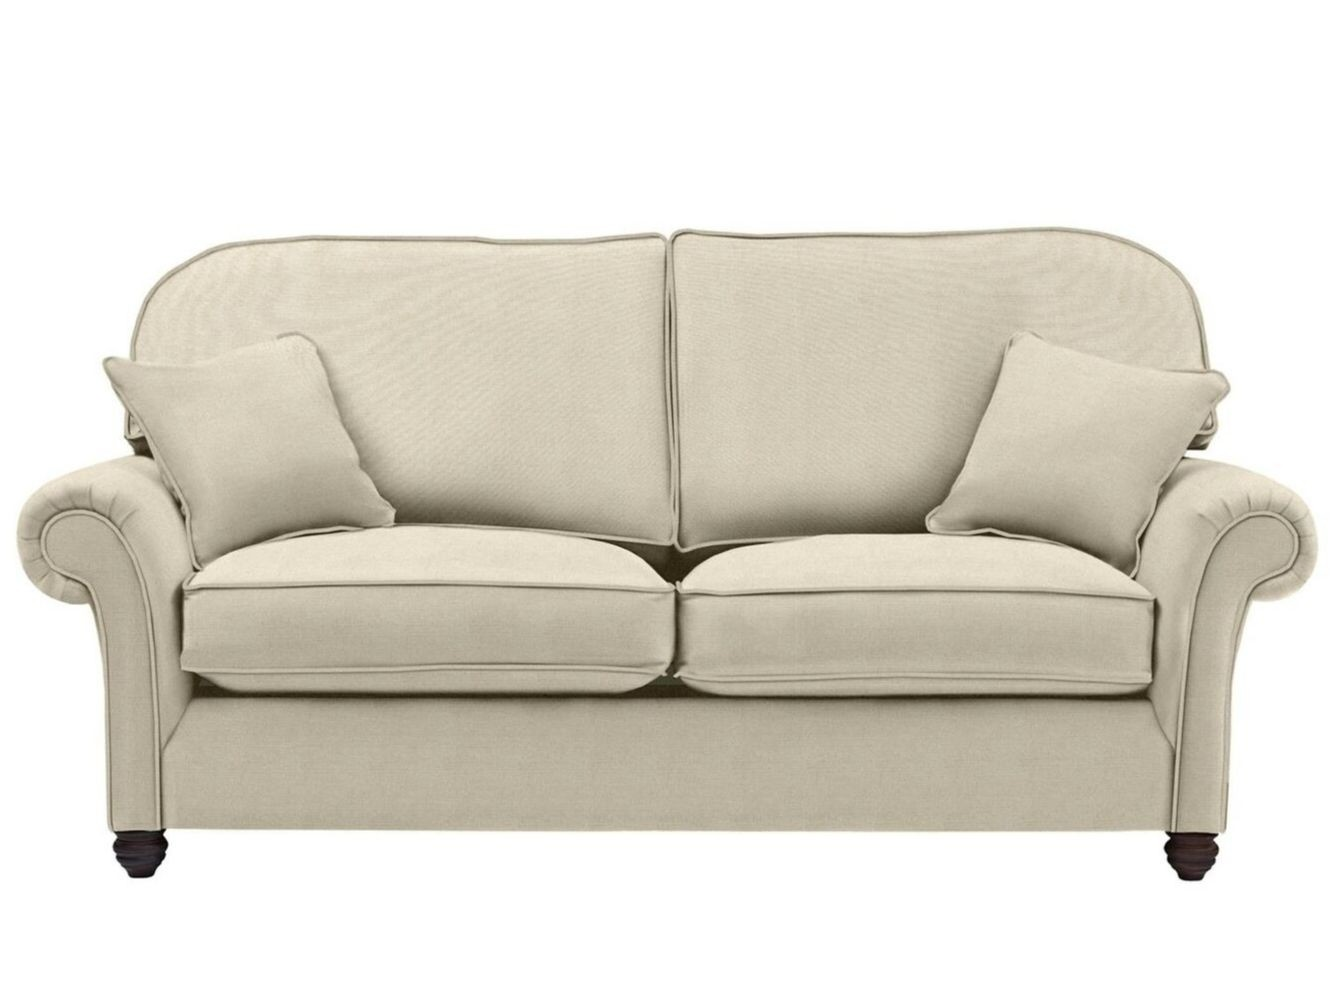 This is how I look in Classic Linen Canvas with siliconized hollow fibre seat cushions